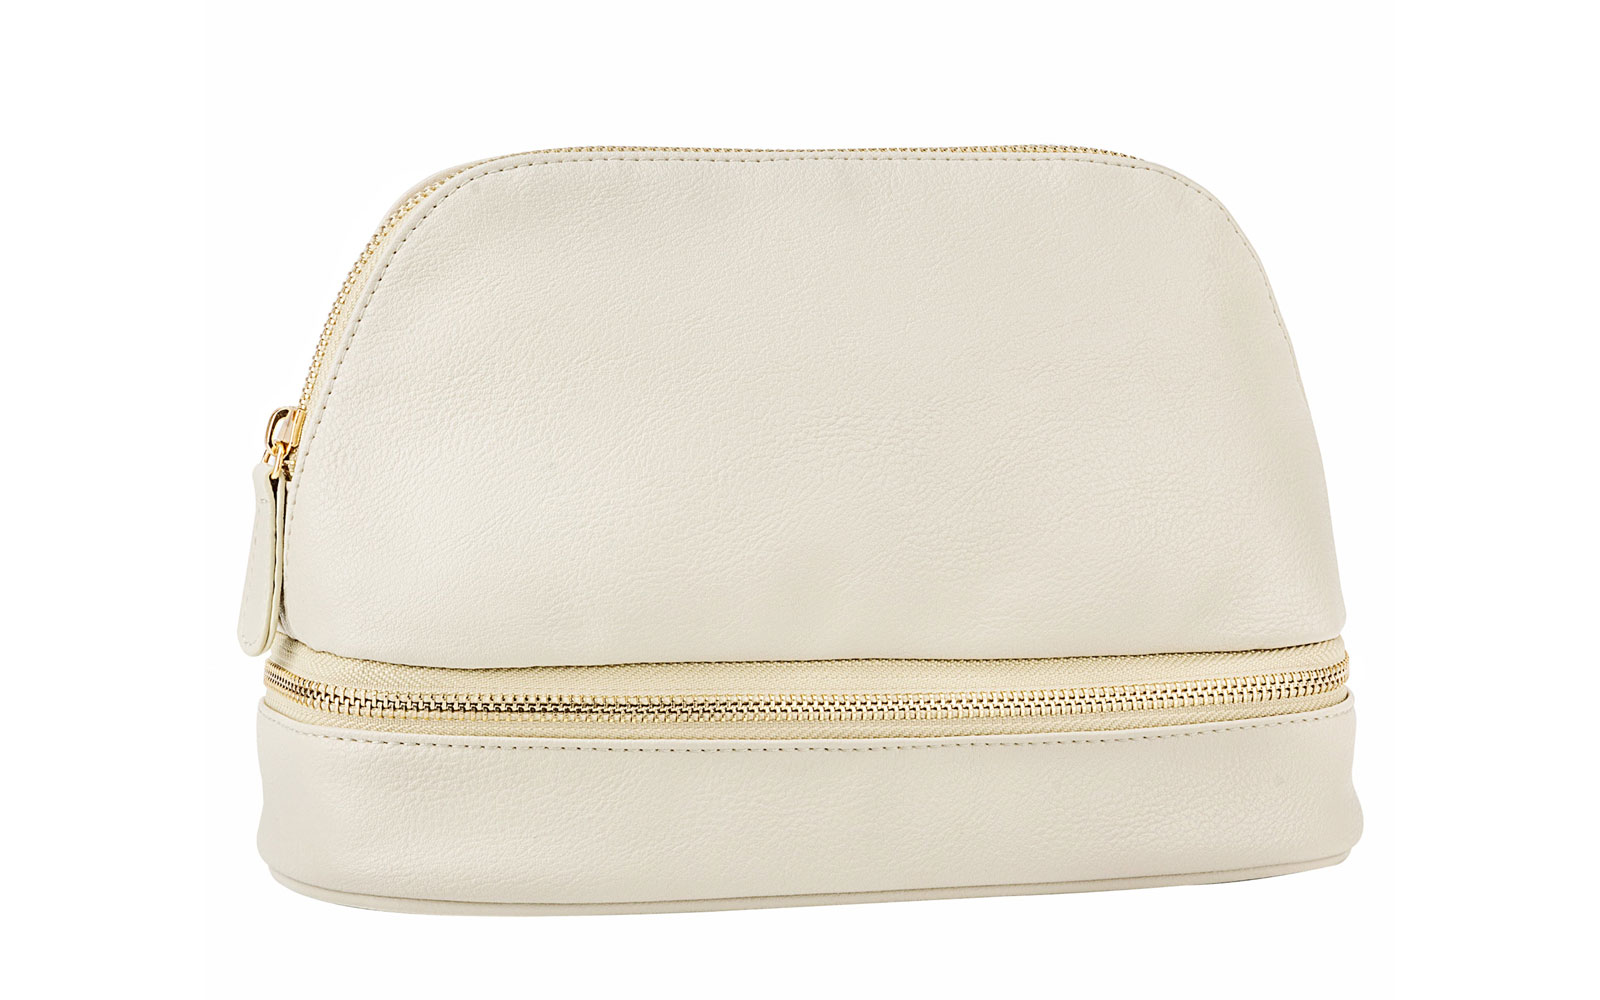 Grey Leather Makeup Bag with Gold Zipper